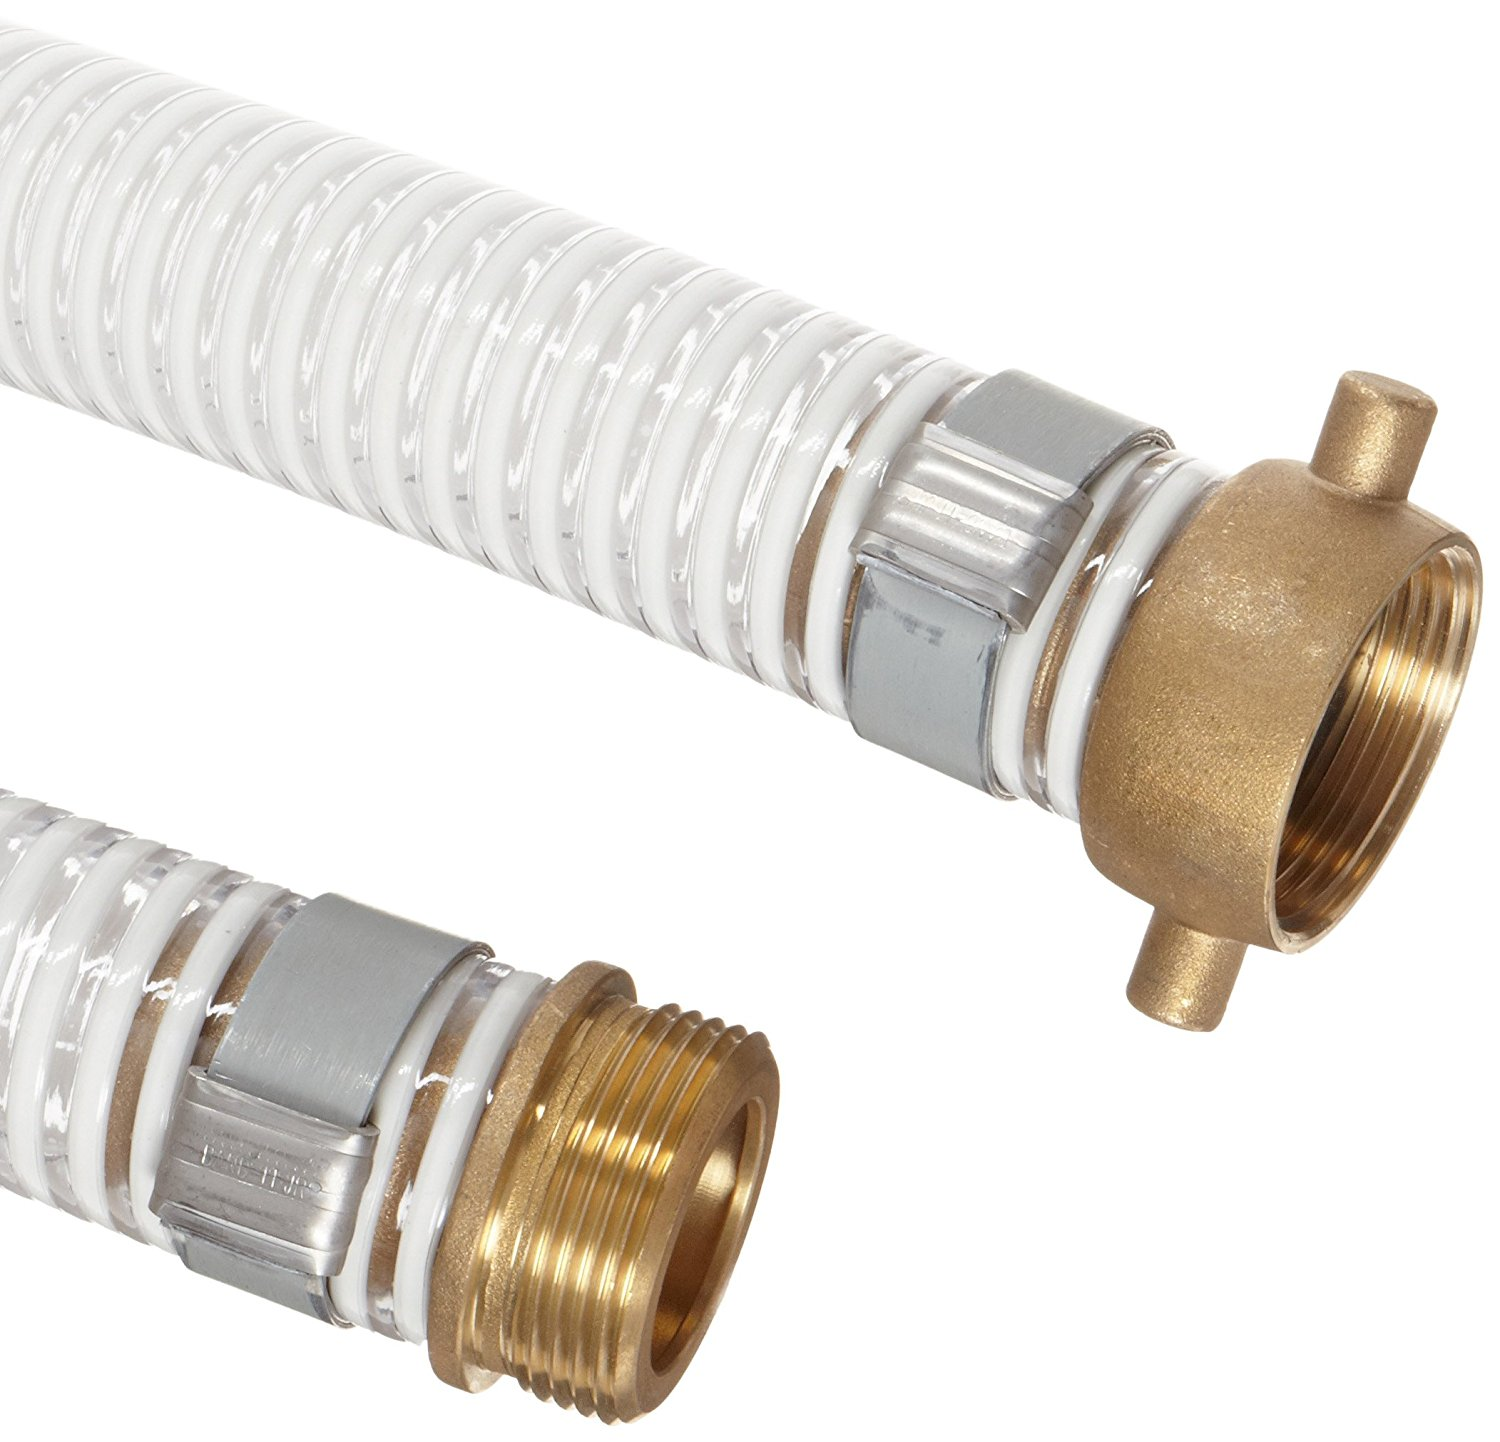 1-1//2 Aluminum NPSH Male x Brass Female Swivel Connection Goodyear EP Spiraflex Red PVC Suction//Discharge Hose Assembly 150 PSI Maximum Pressure 1-1//2 ID 25 Length